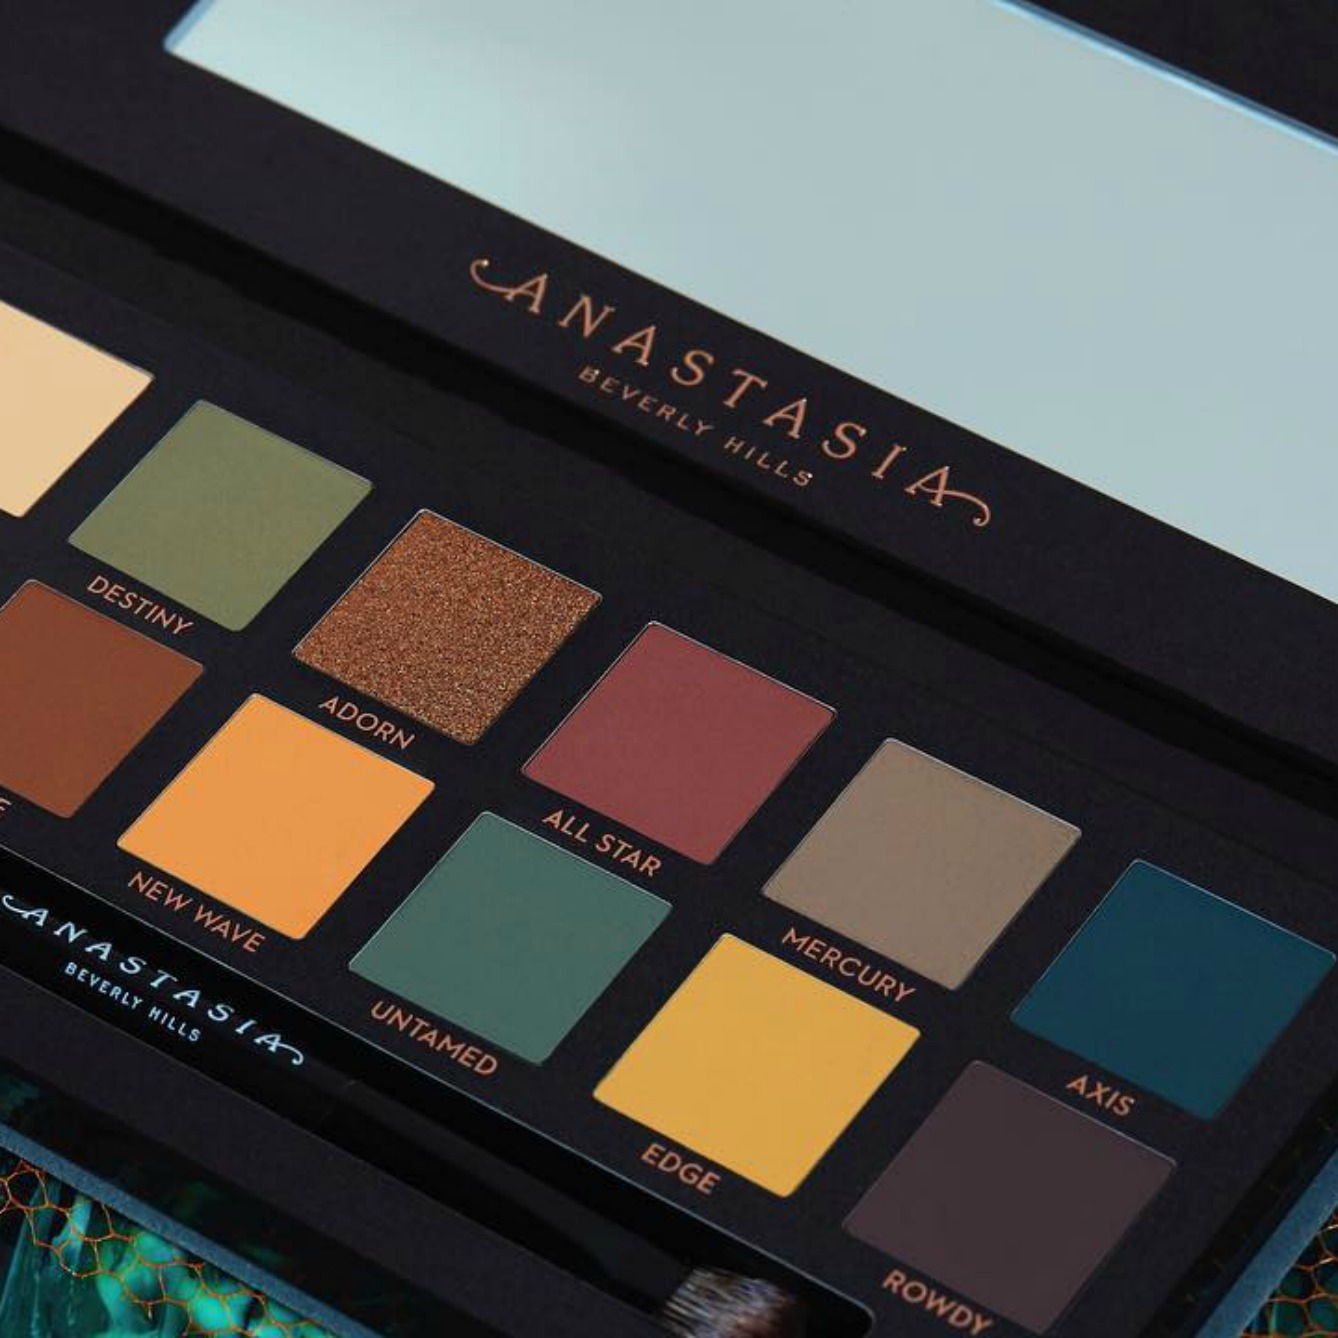 See the New Anastasia Palette in All it's Glory